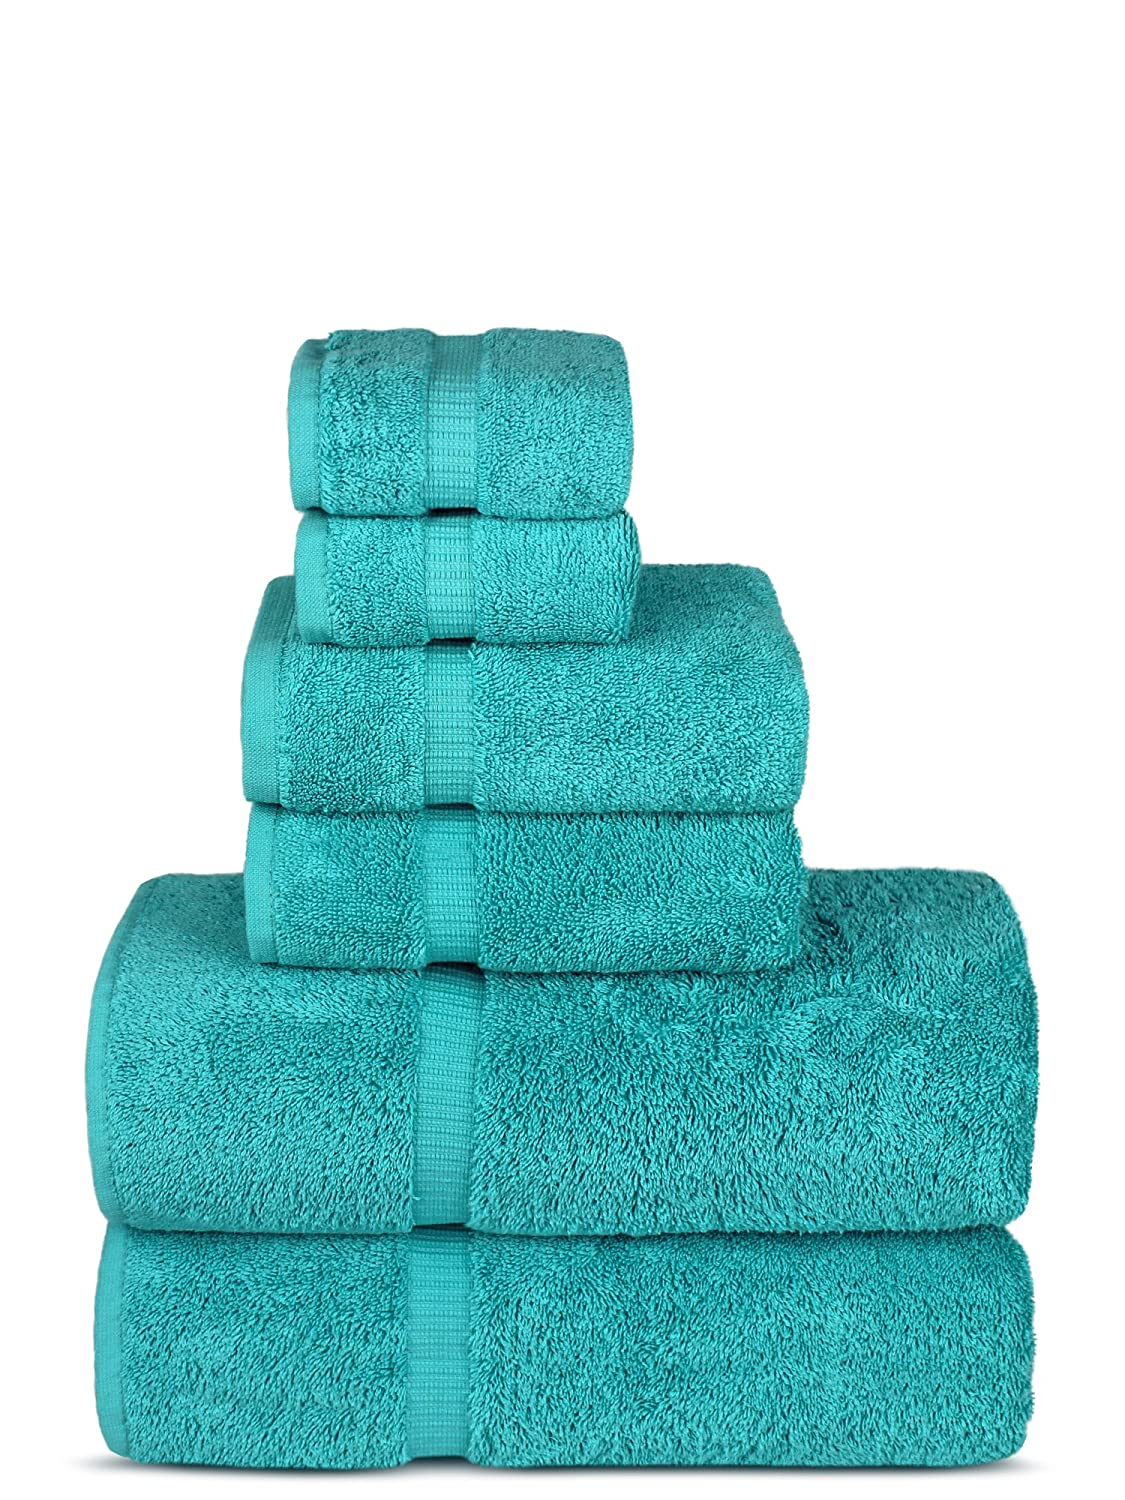 Chakir - Turkish Luxury Linen Towels Set